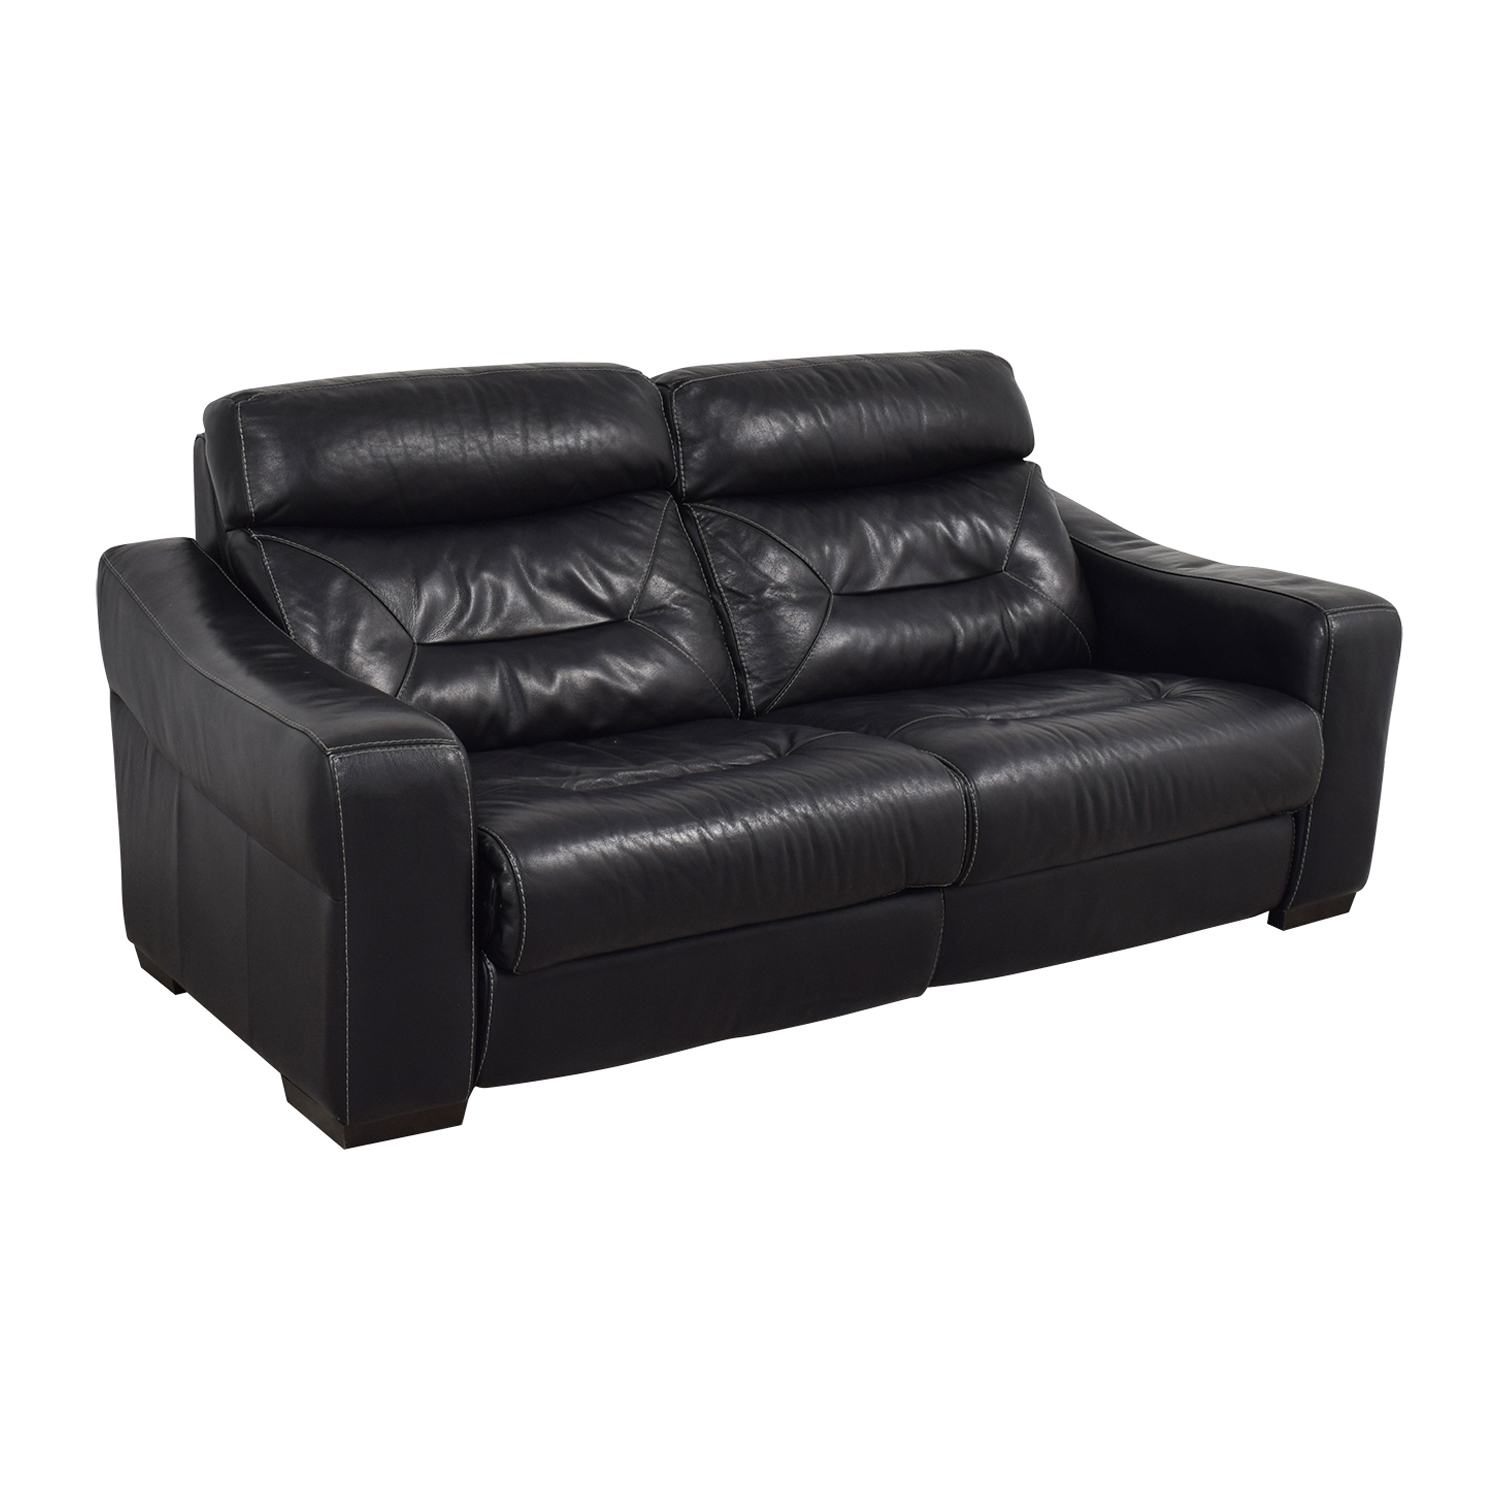 73 OFF  Macys Macys Black Leather Recliner Sofa  Chairs